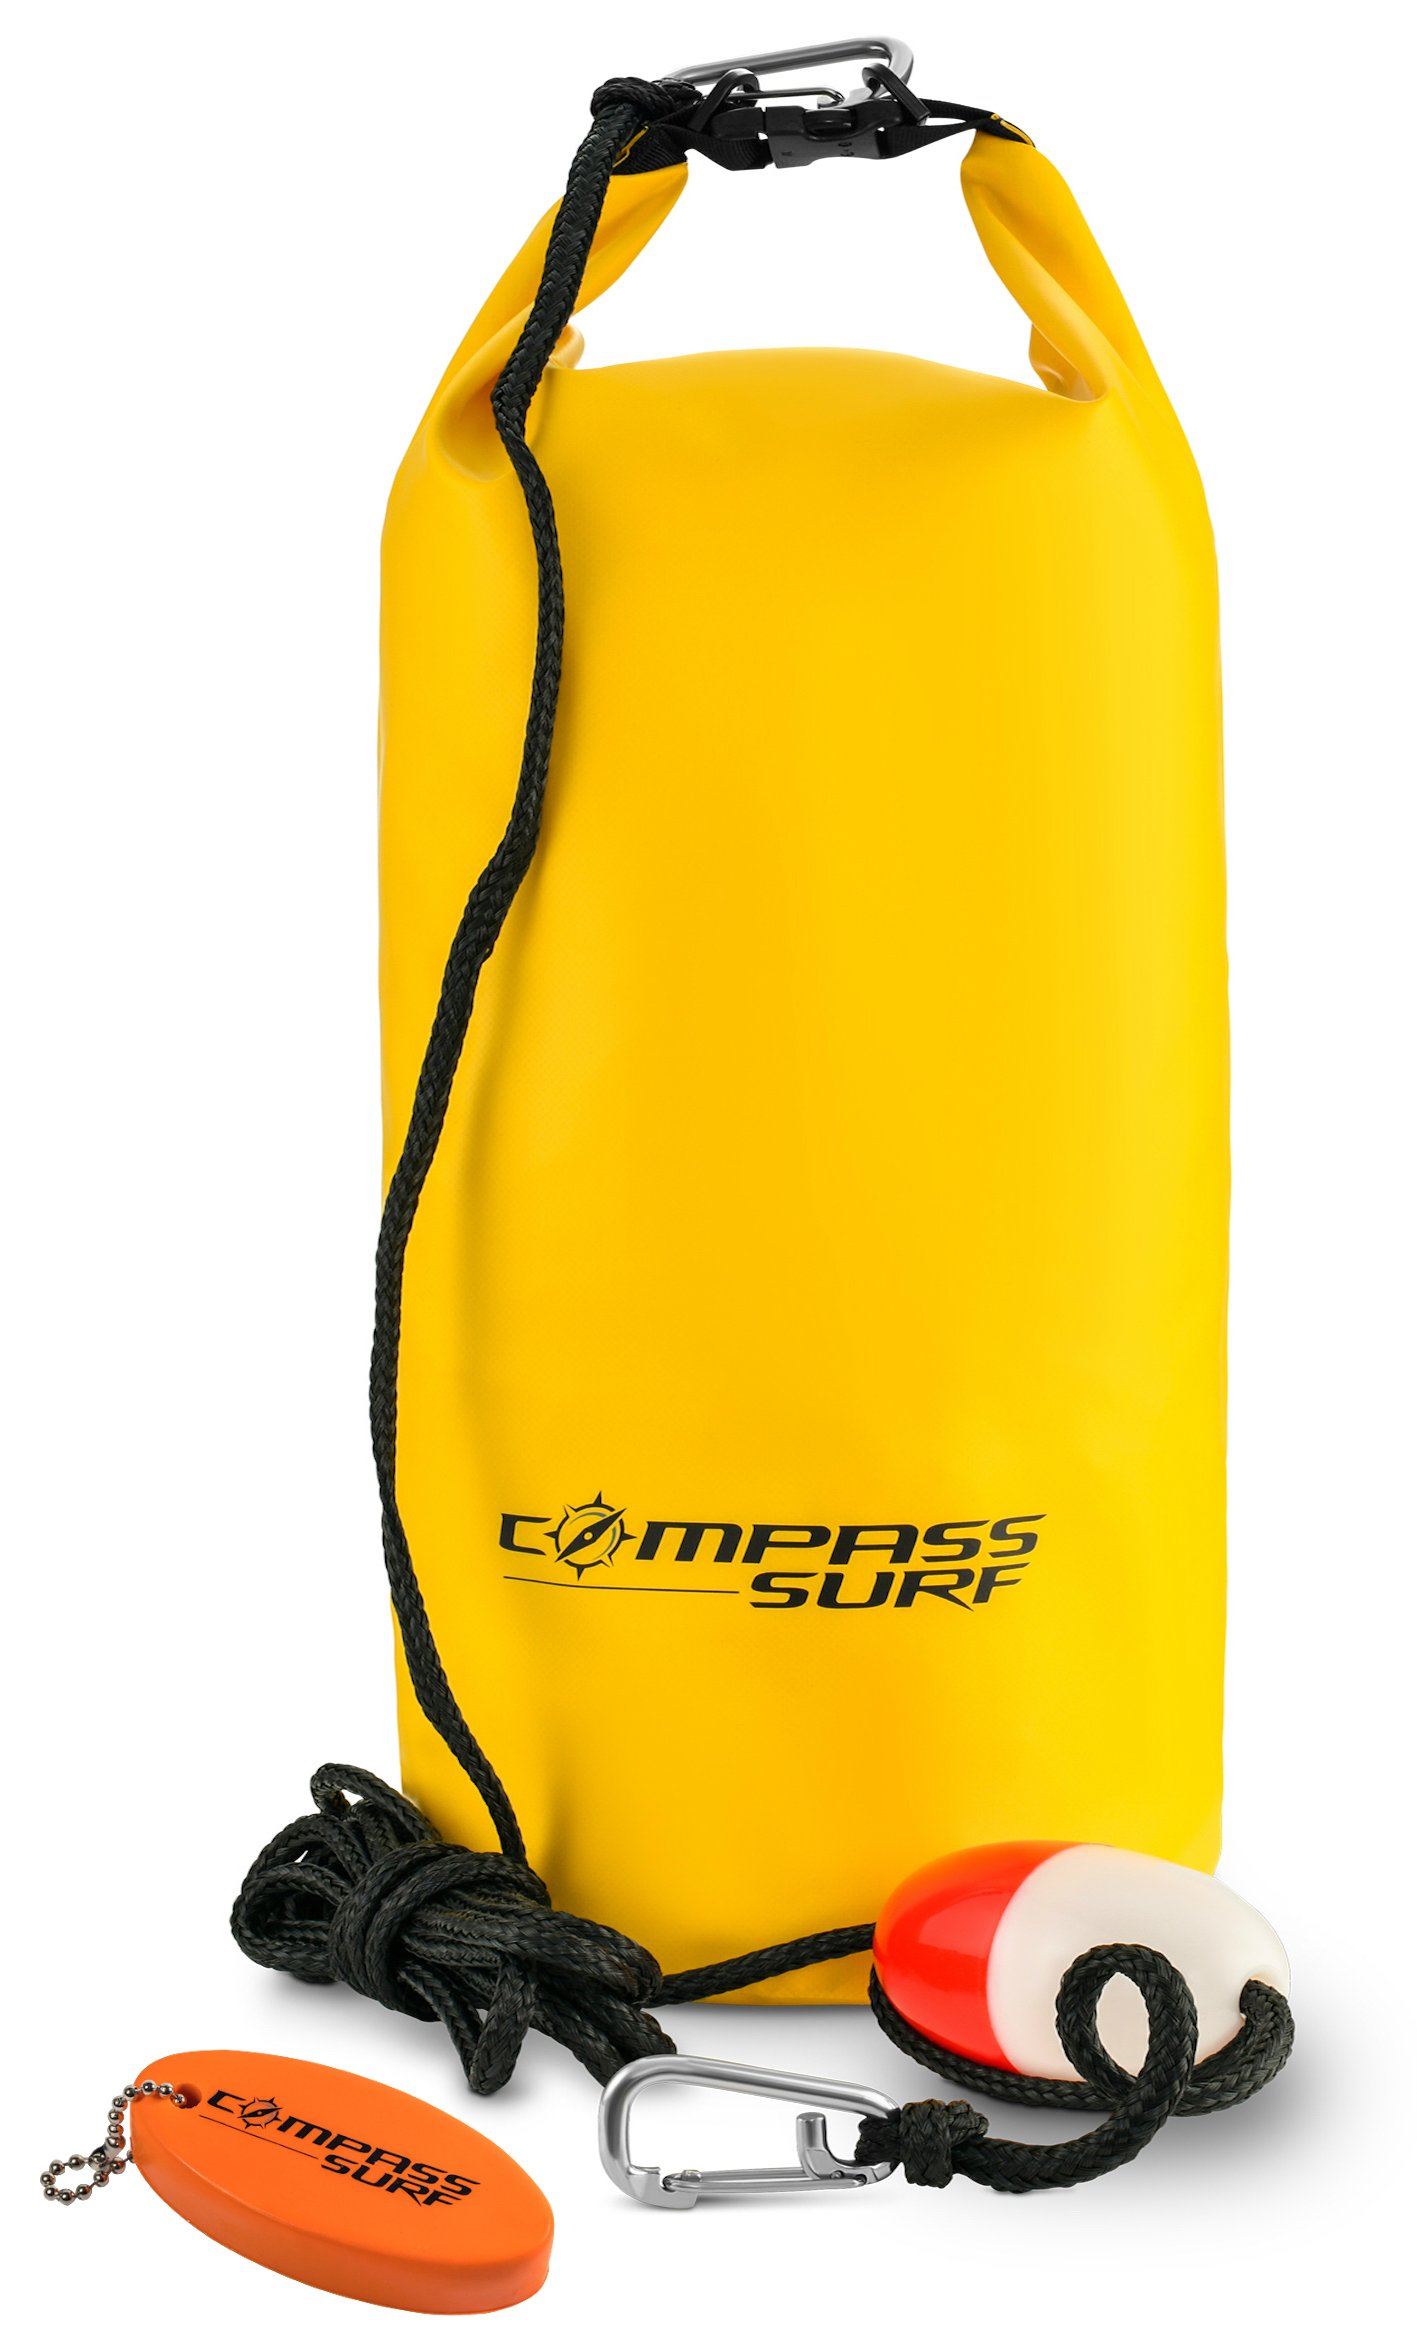 Compass Surf XL Sand Anchor Kit for Kayaks, Jet Skis, and Boats. Includes 15 feet of marine grade rope, buoy, stainless steel clip, and keychain float.